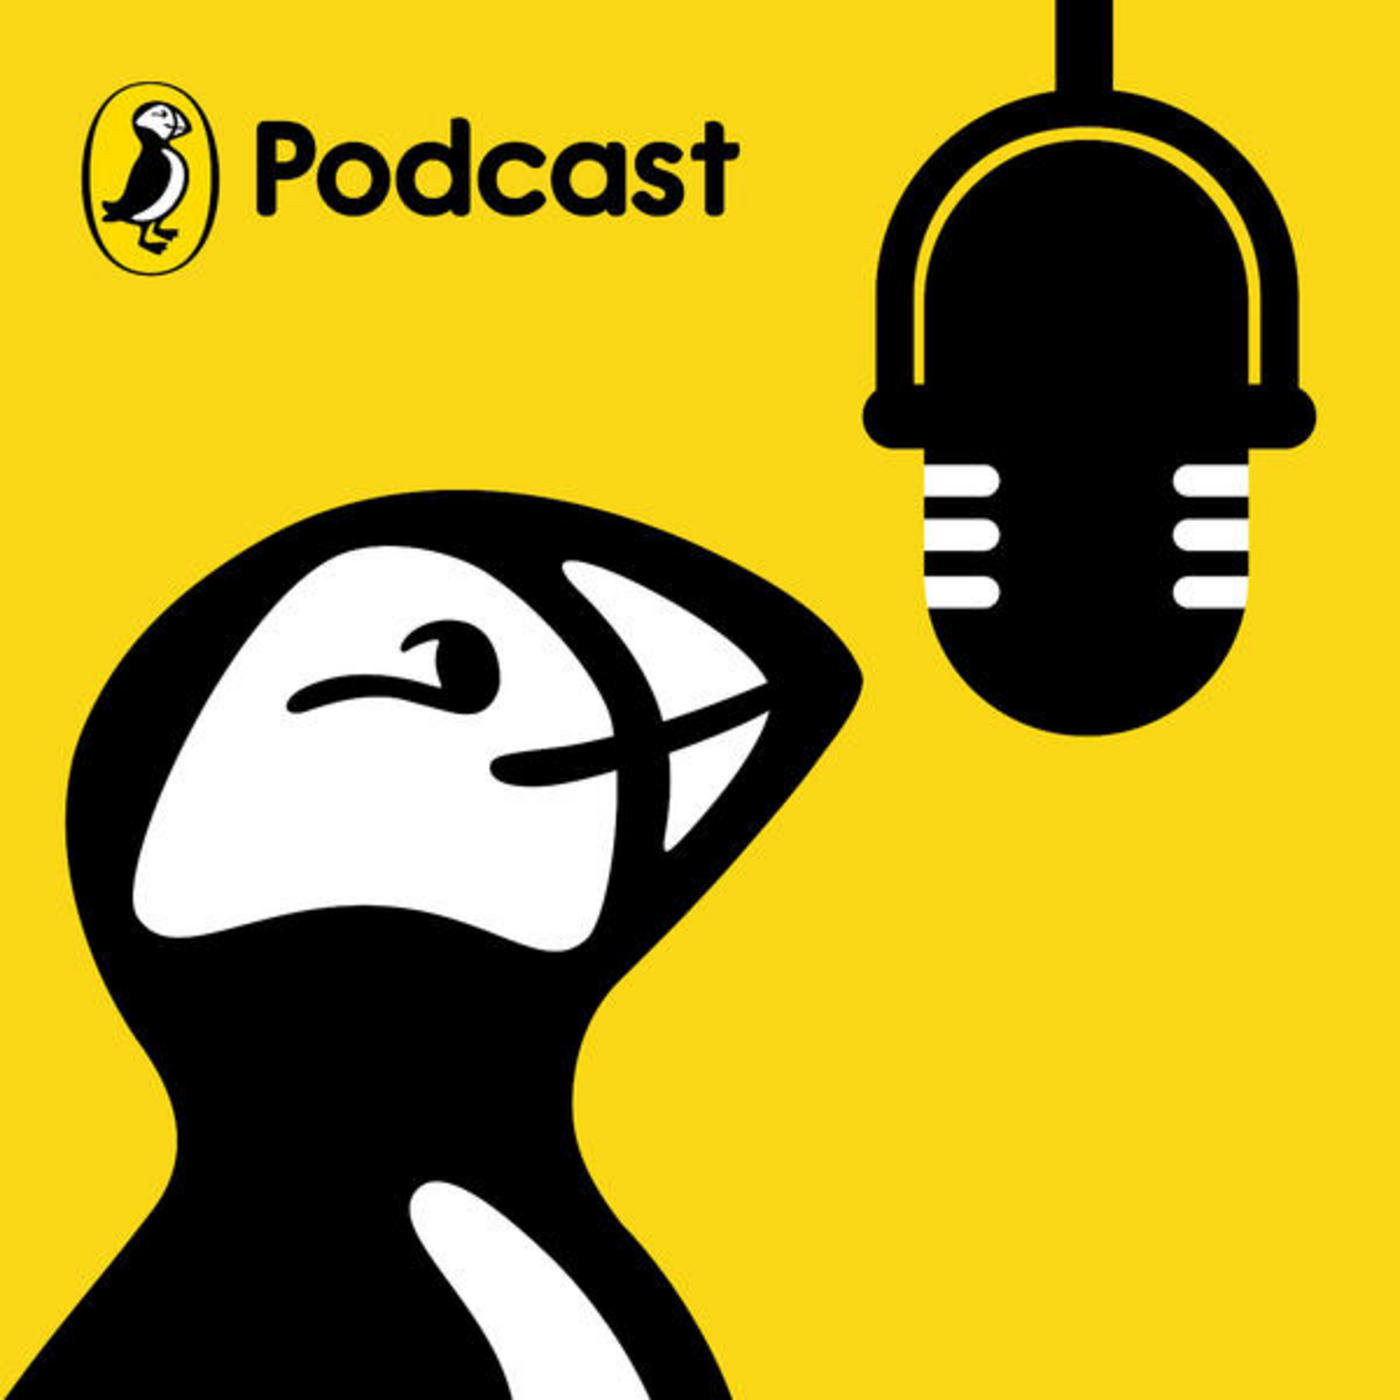 Puffin Podcast Episode 12 - Adventures in Wonderland